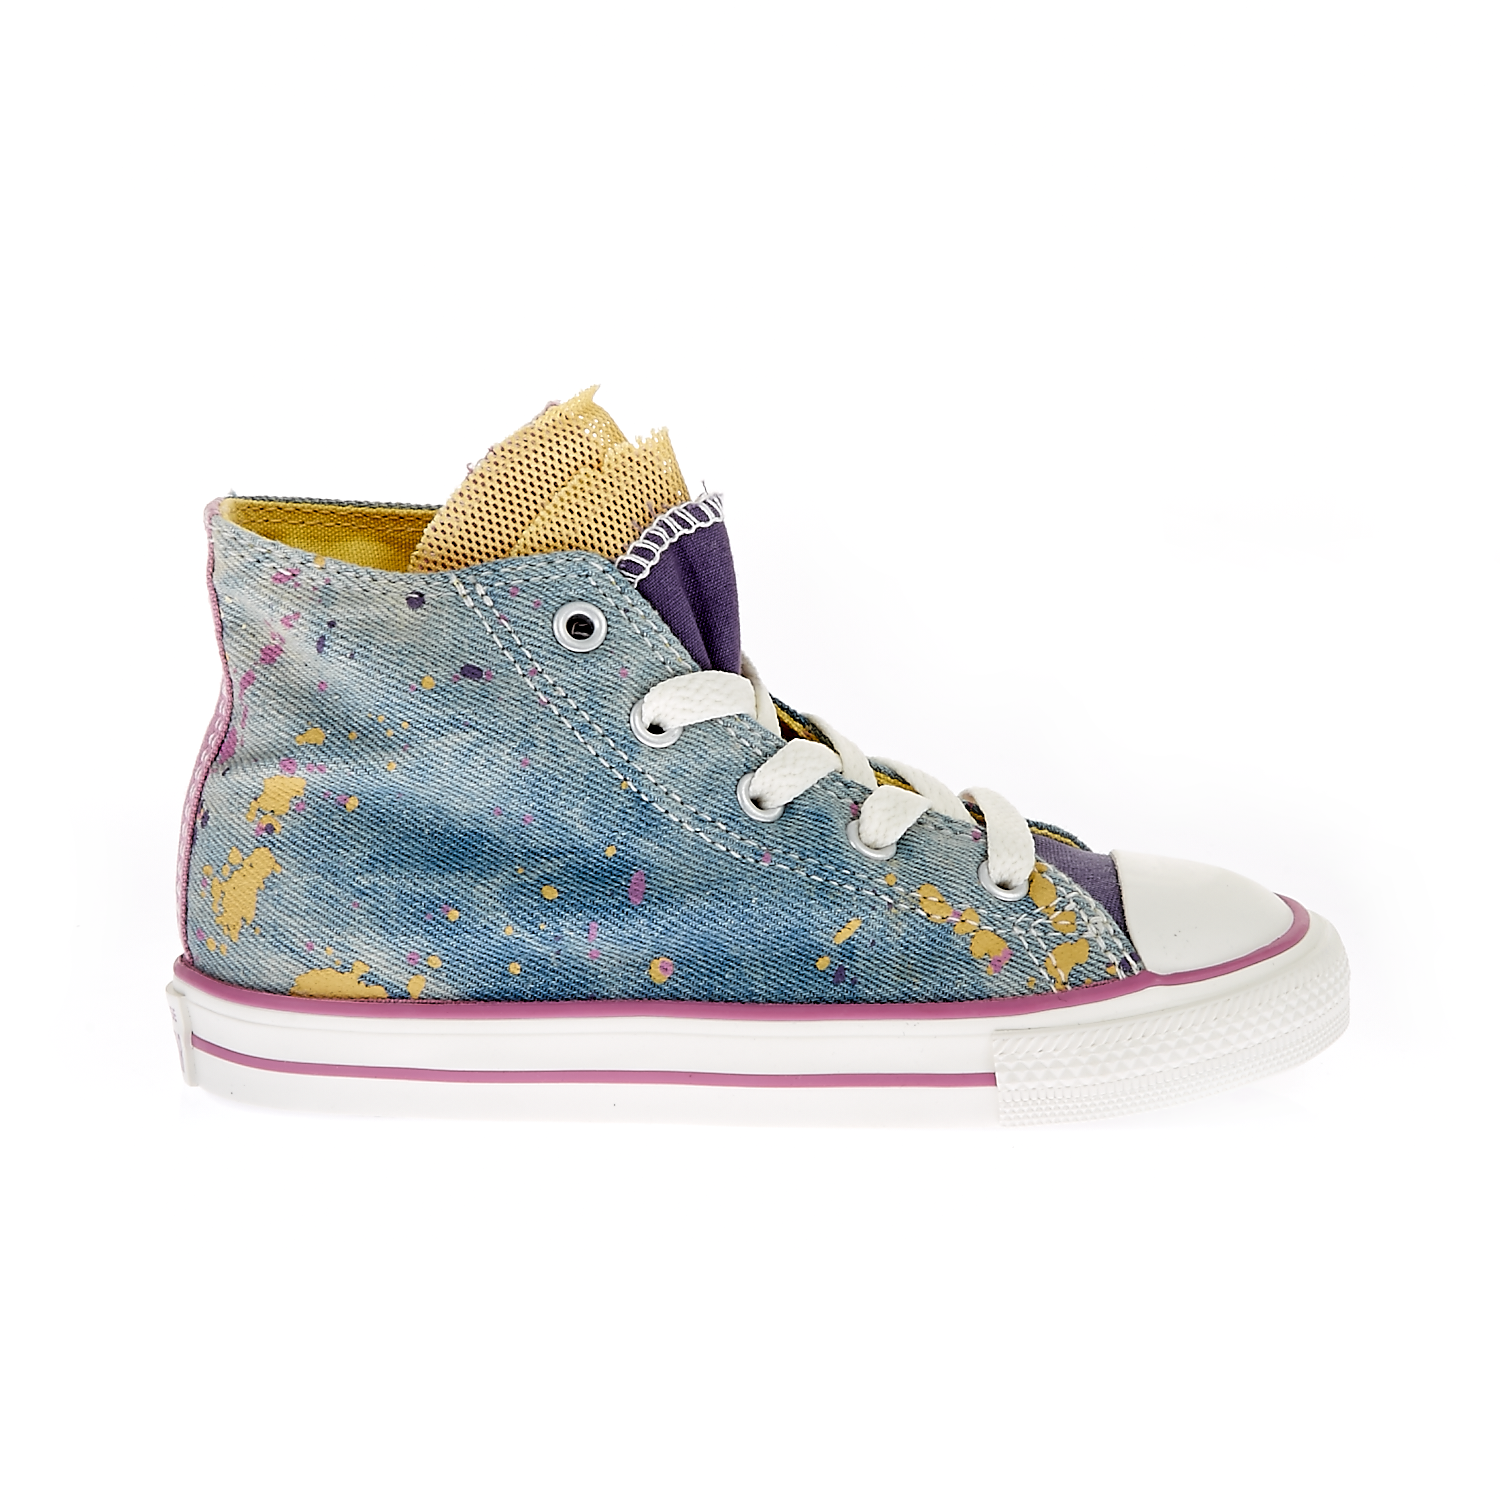 CONVERSE - Βρεφικά παπούτσια Chuck Taylor All Star Party Hi μπλε